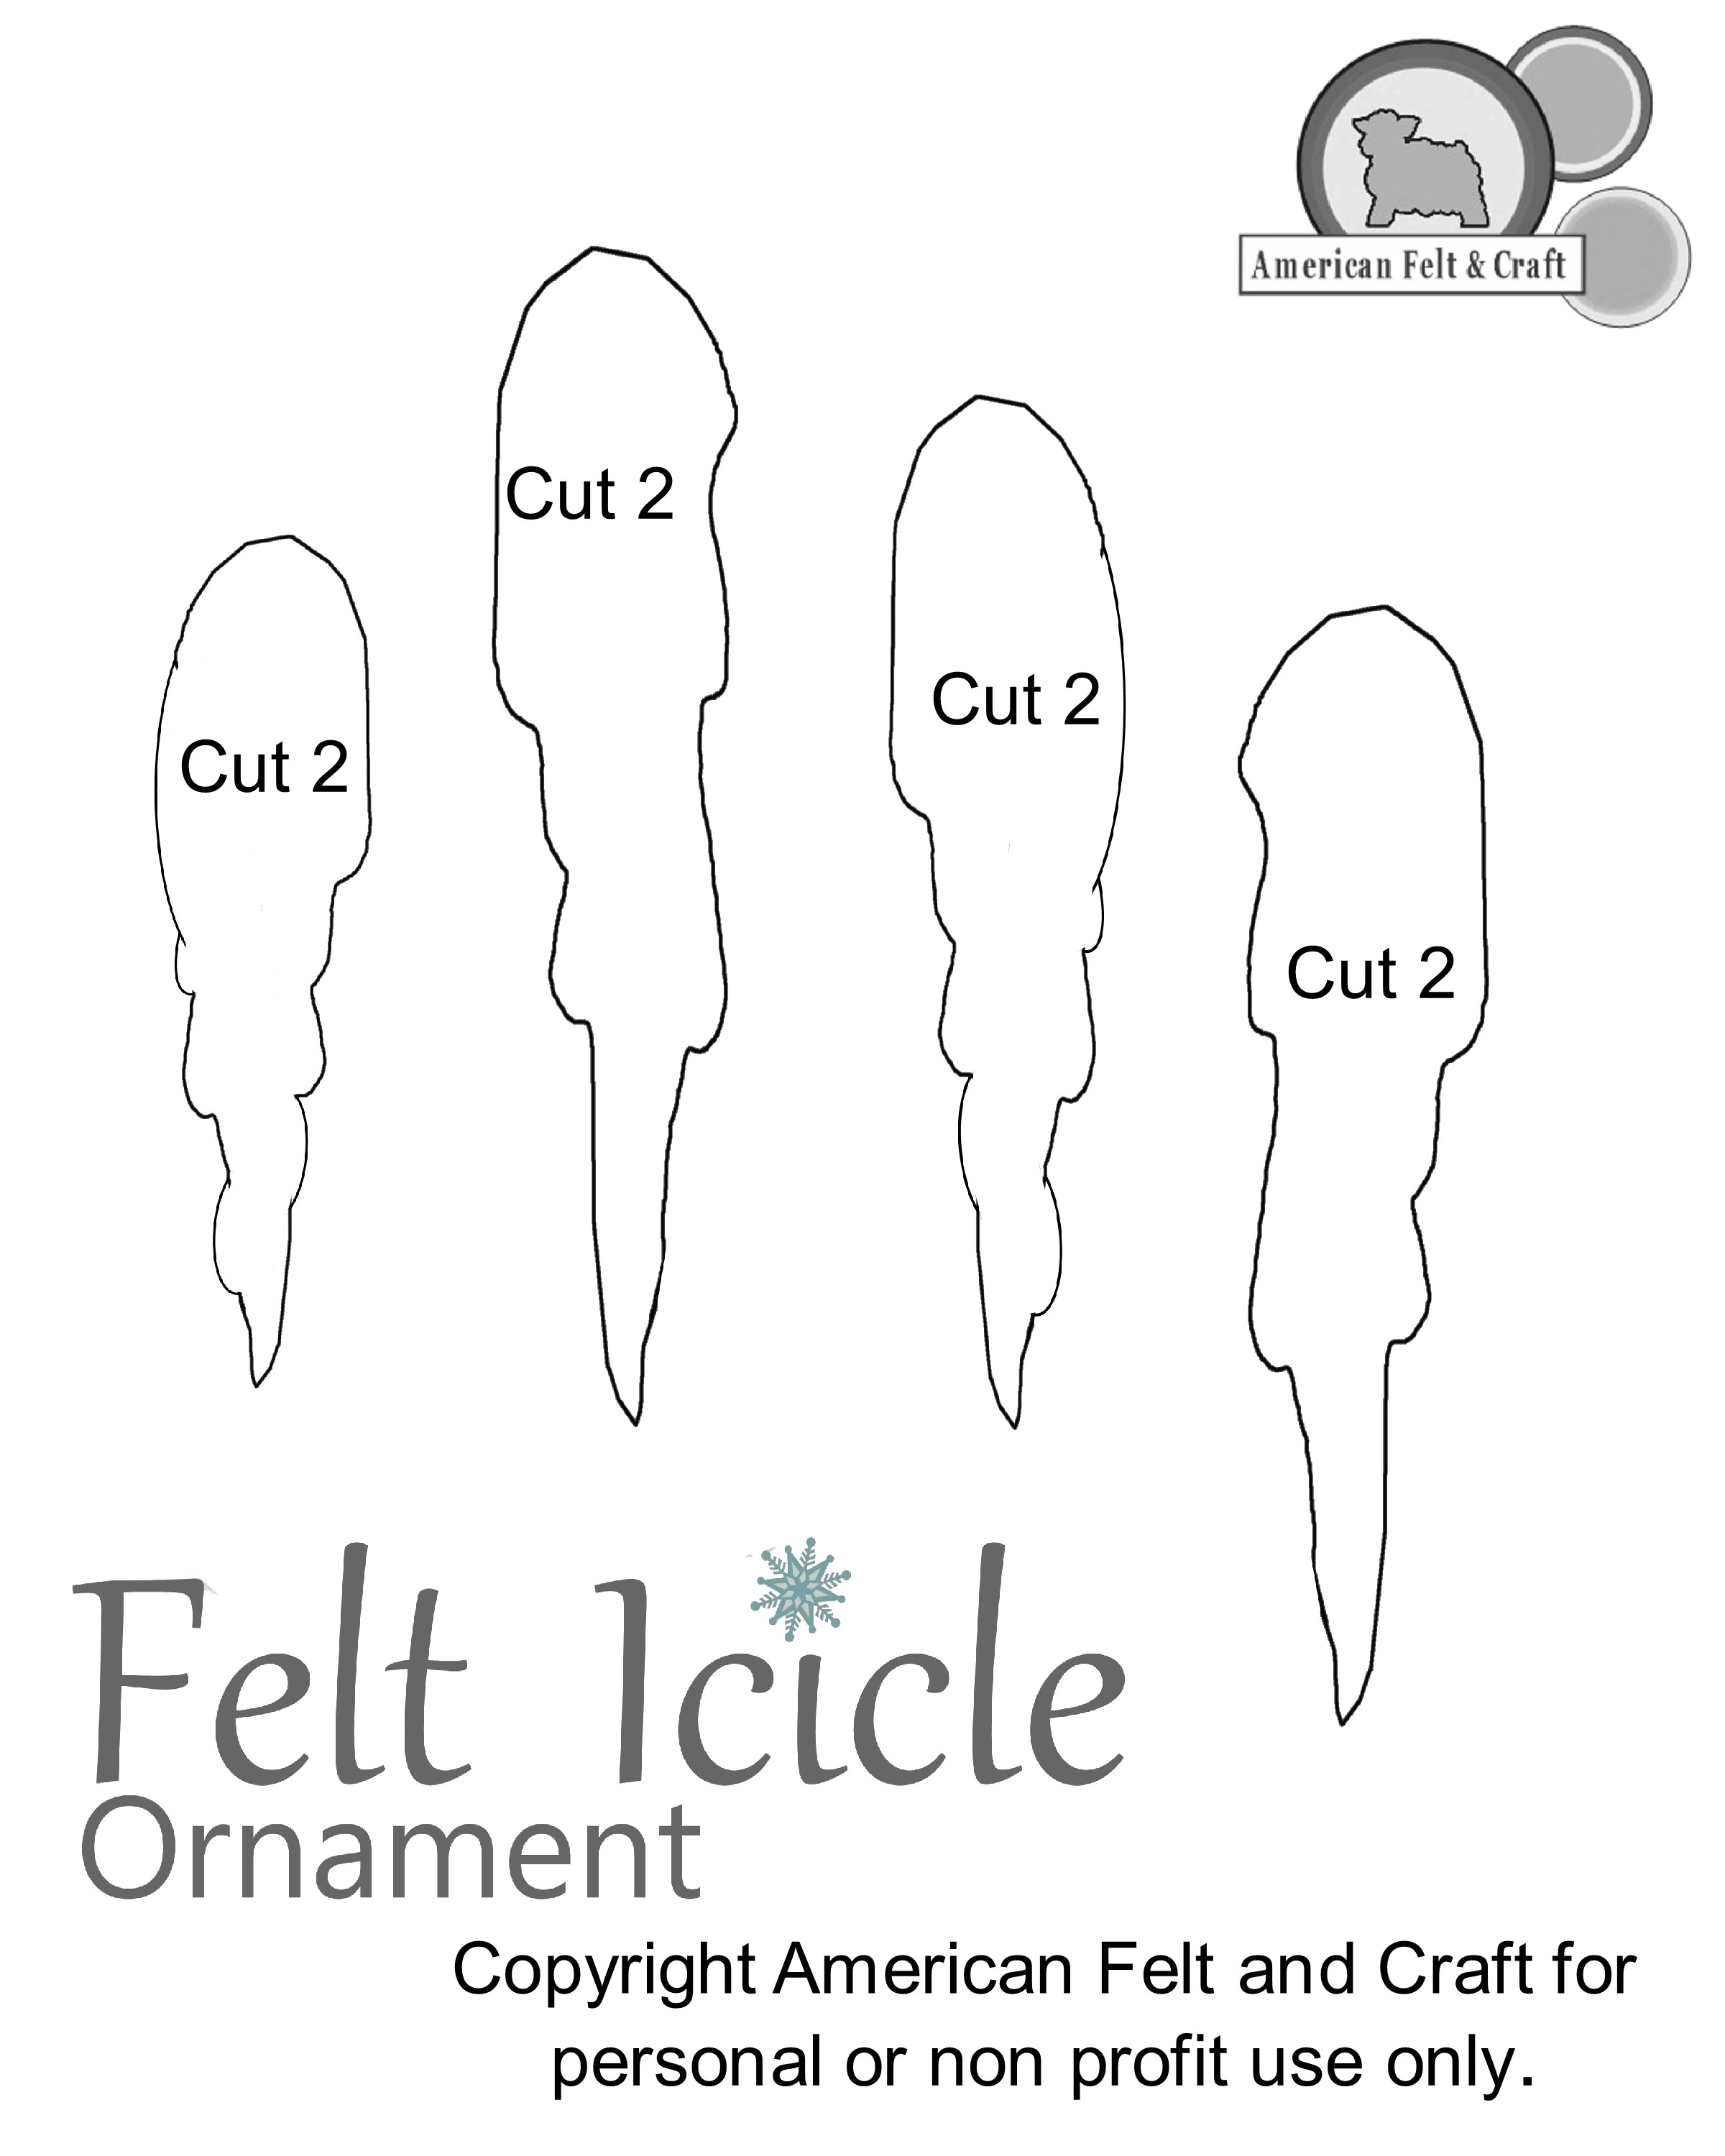 Felt Icicle Christmas Ornament | ~American Felt & Craft ~ Blog